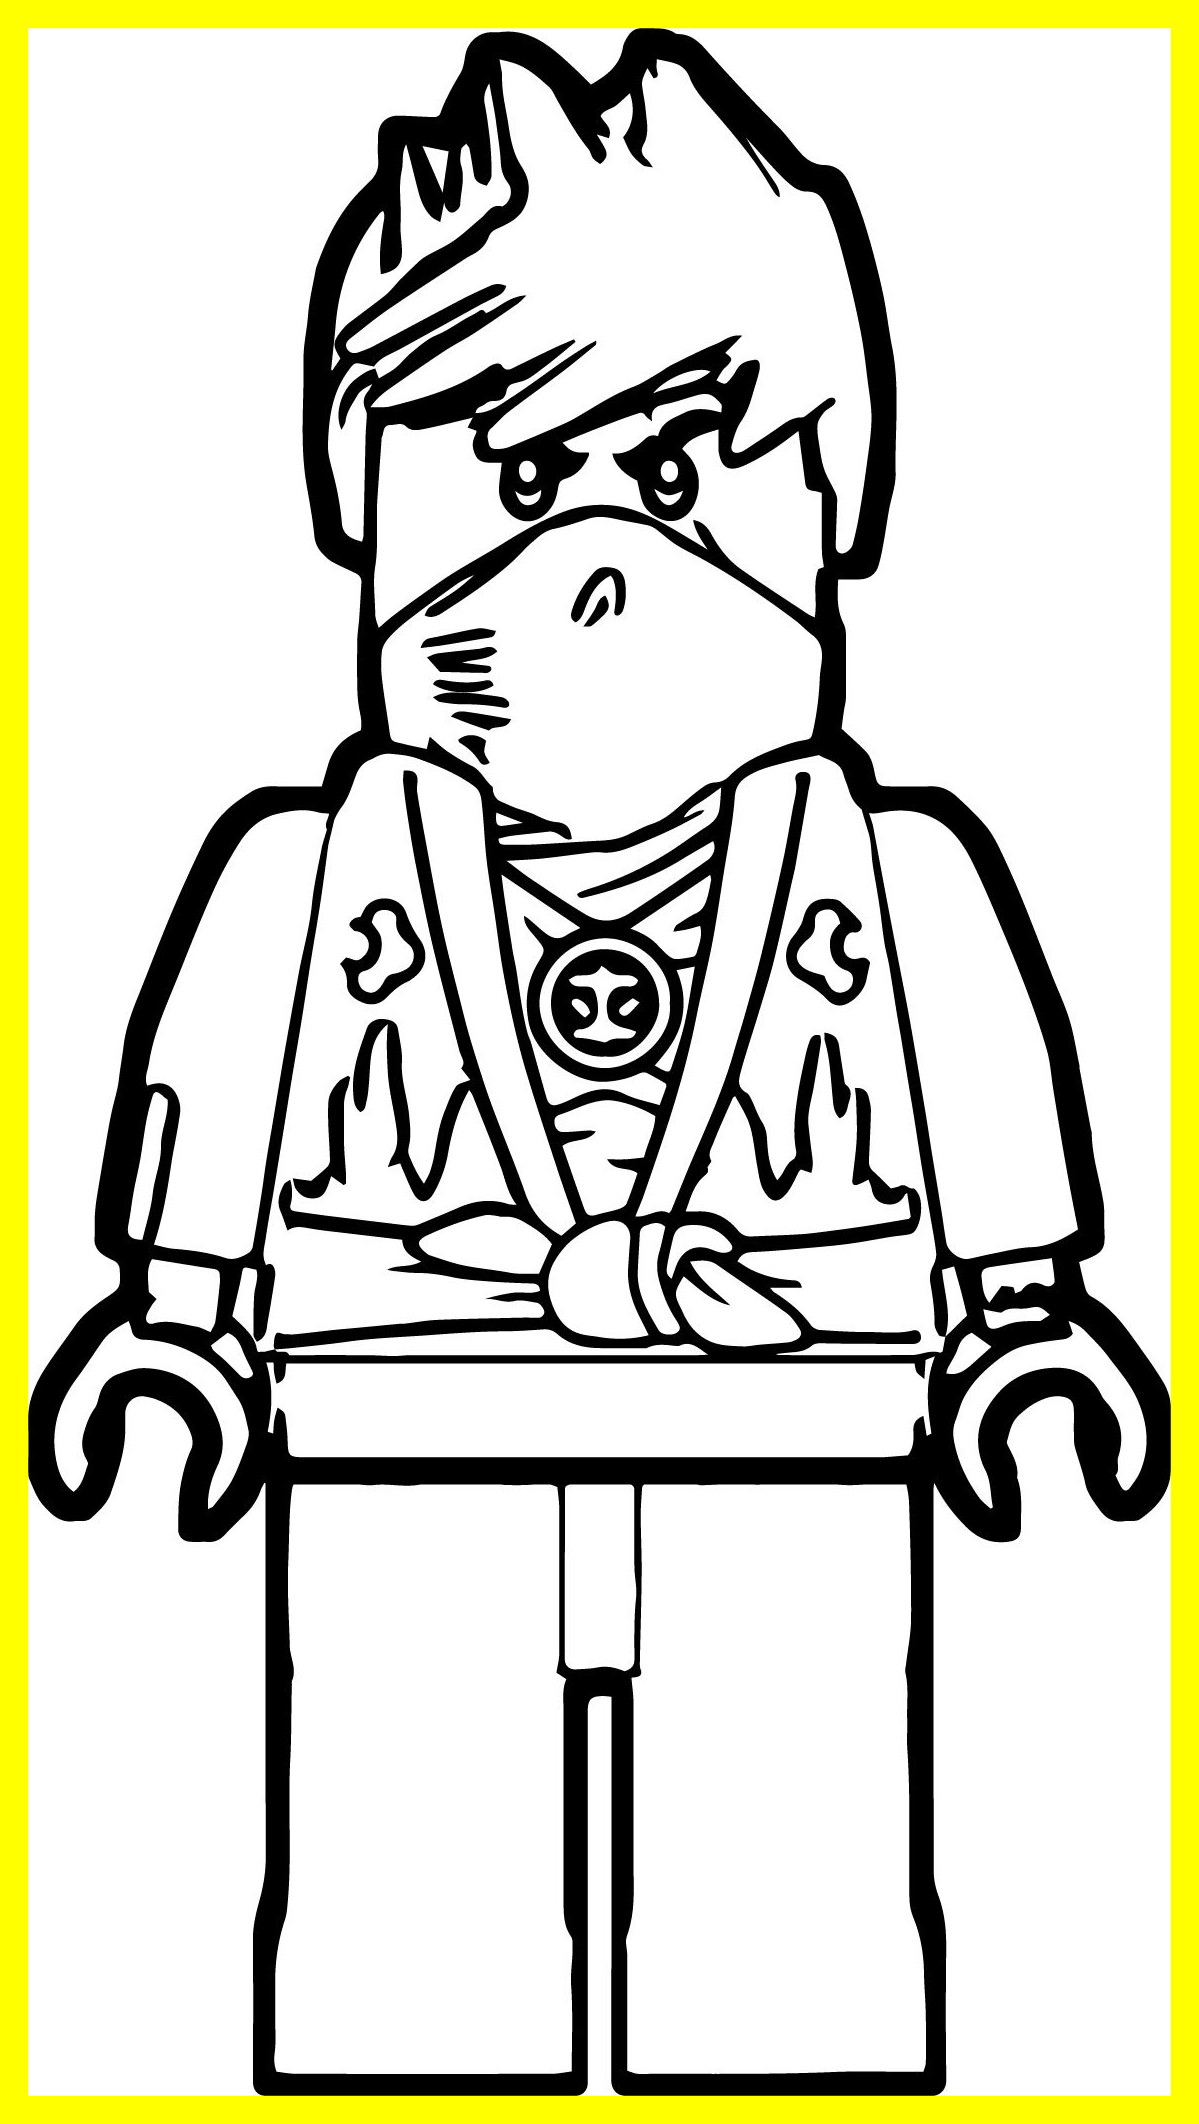 Lego Ninjago Colouring Pages To Print At Getdrawings Free Download